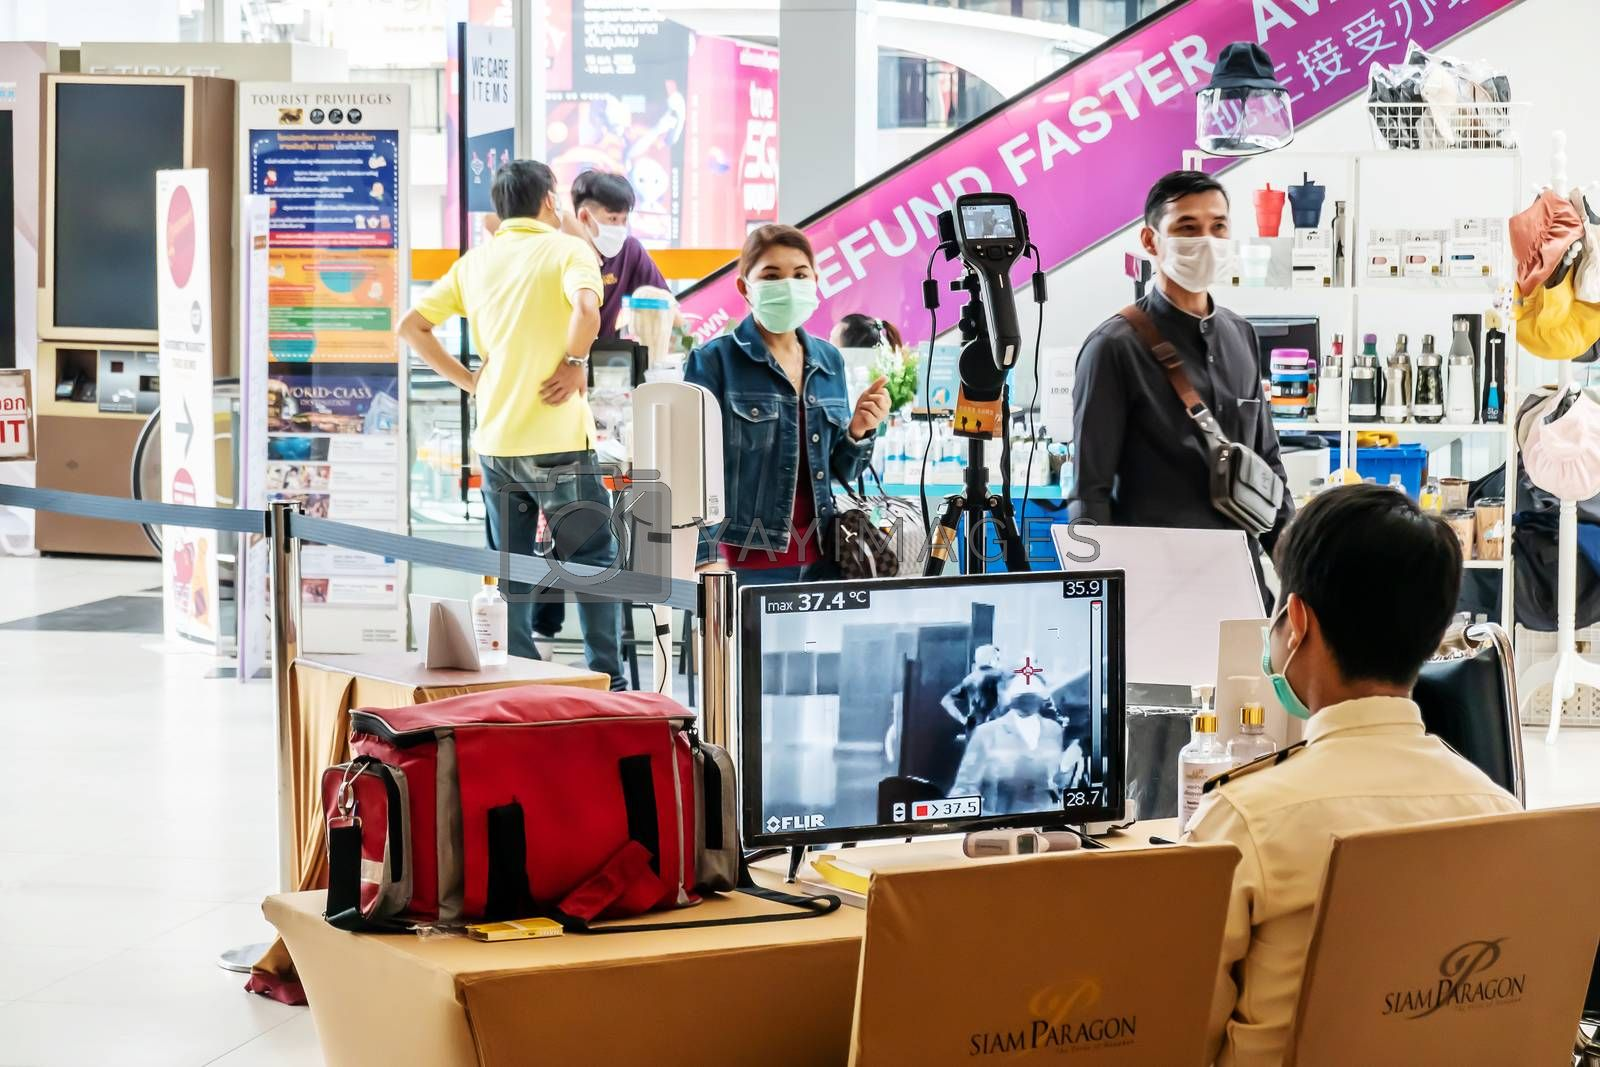 Bangkok,Thailand - April 07 2020. Temperature control zone, monitor of thermal scanner camera to check people entrance of Siam paragon shopping mall in Bangkok during Coronavirus, Covid 19 outbreak.